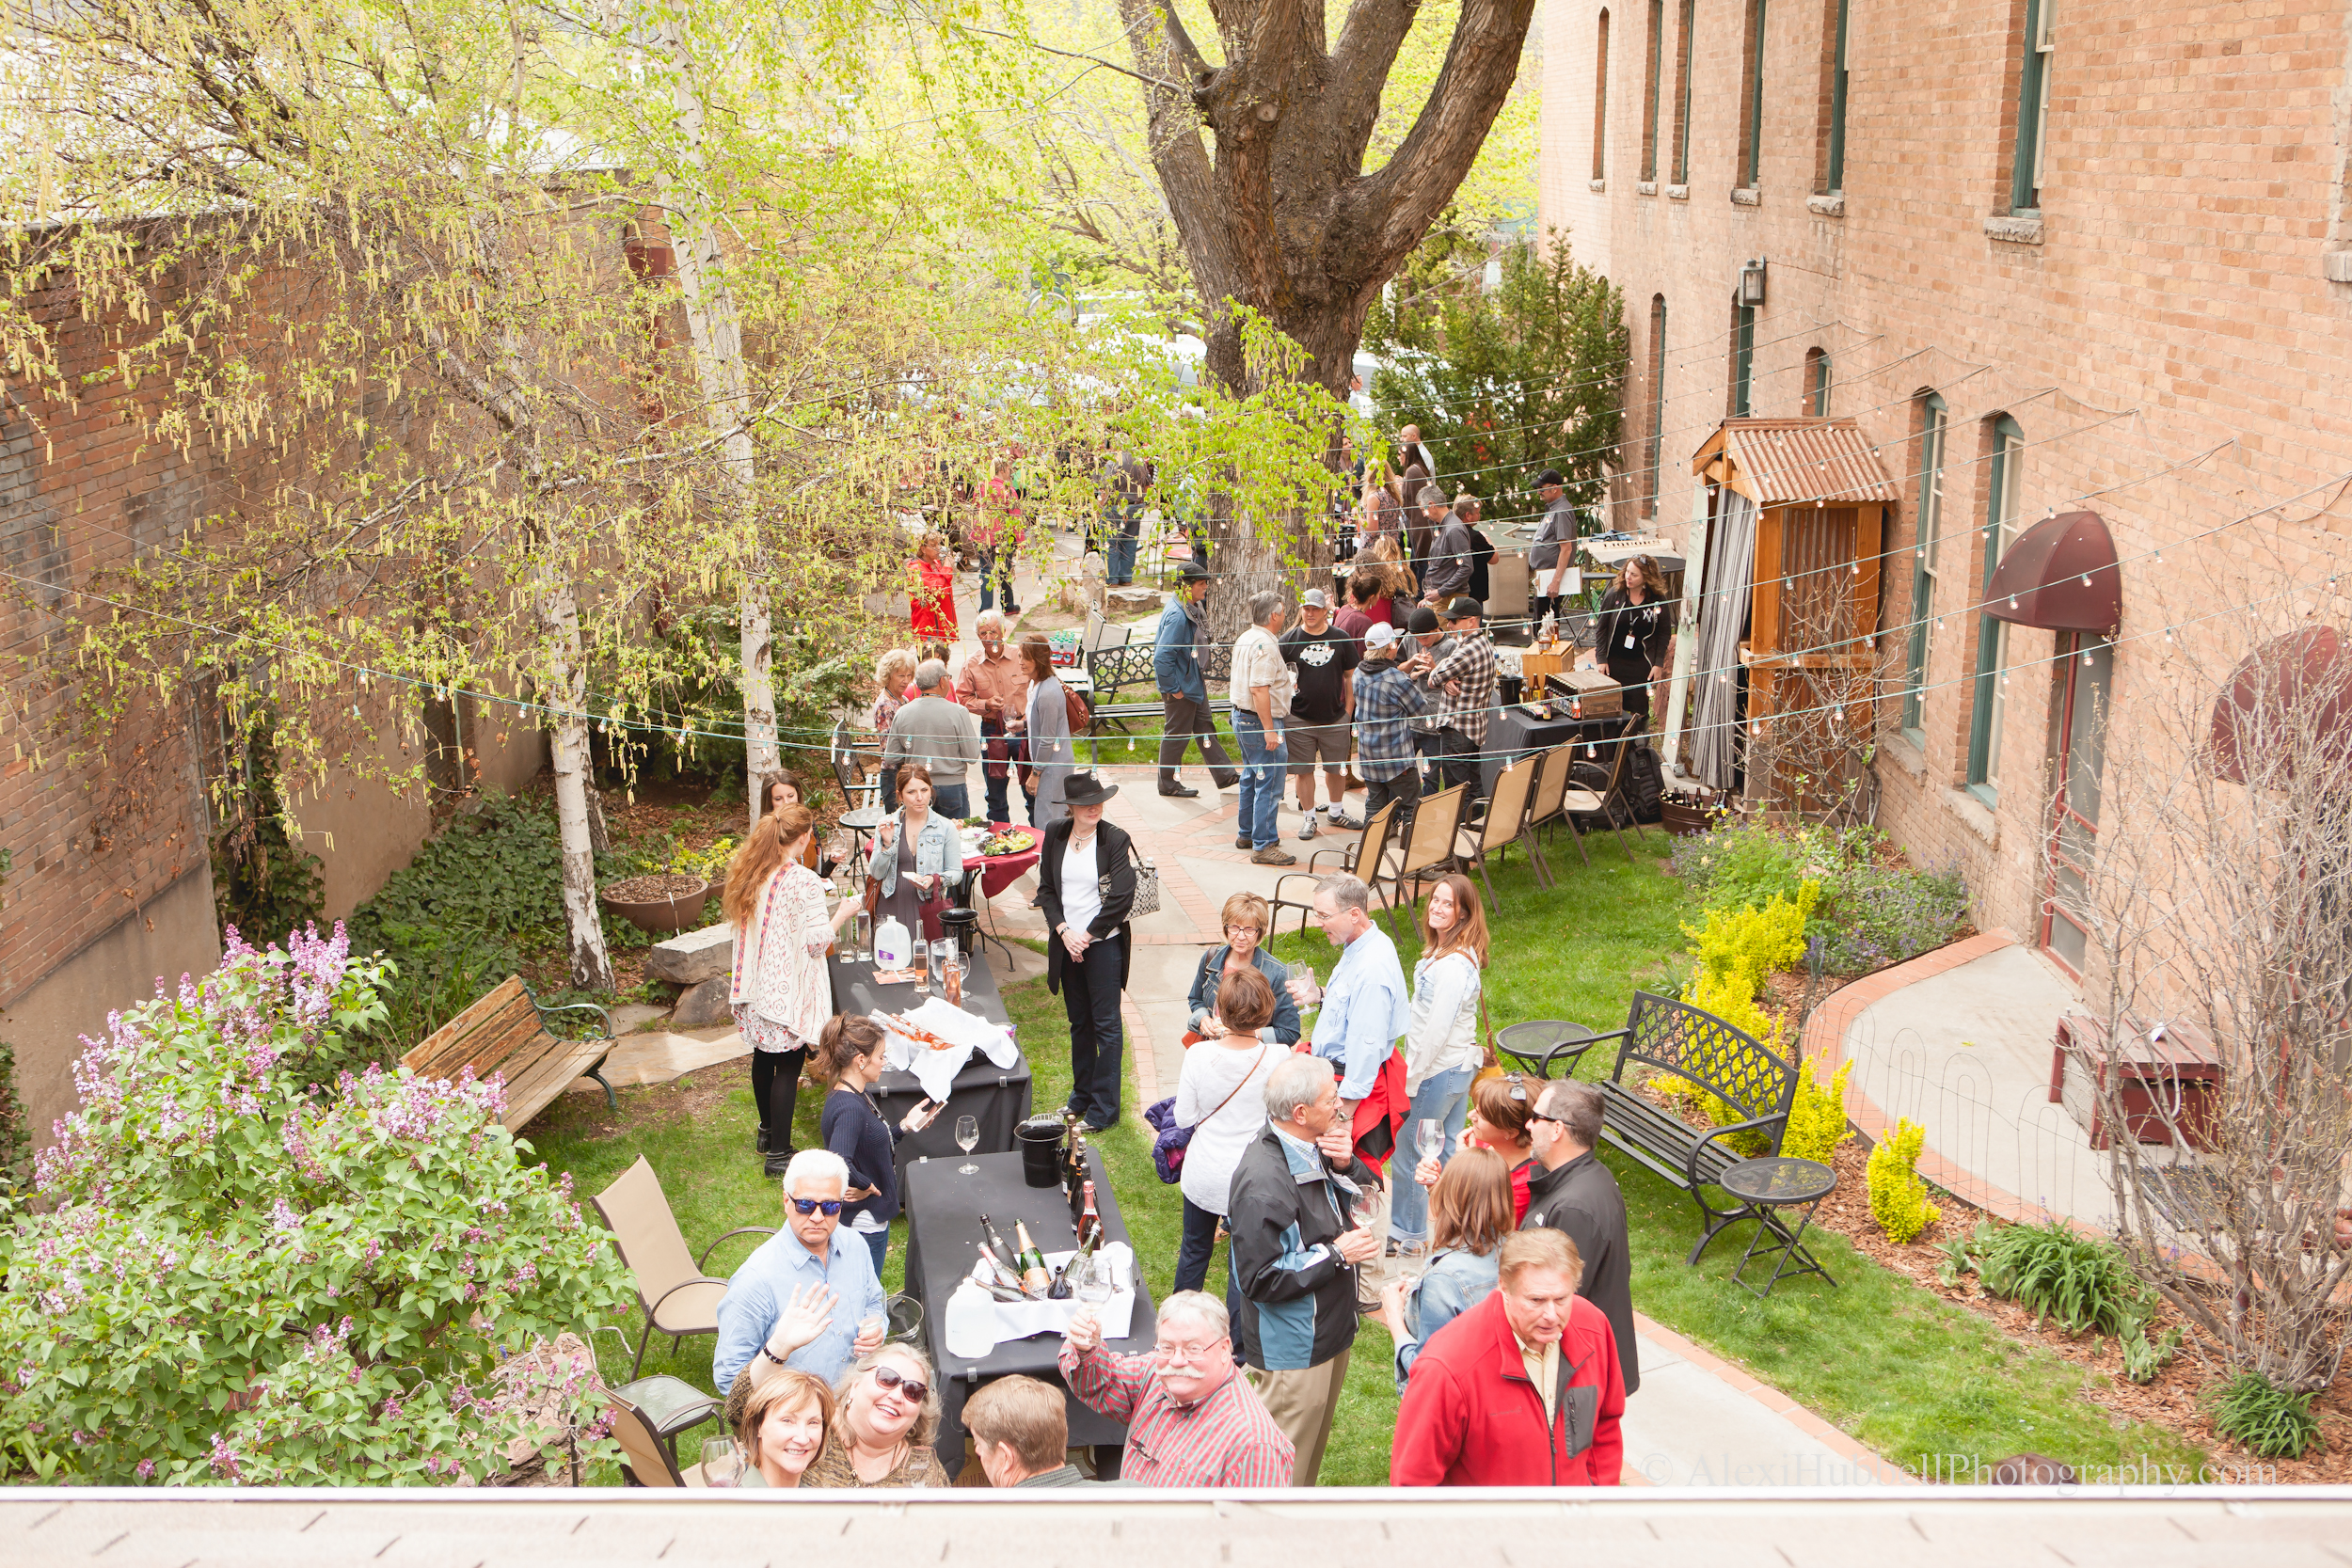 The Durango Wine Experience crowd at  The Rochester Hotel